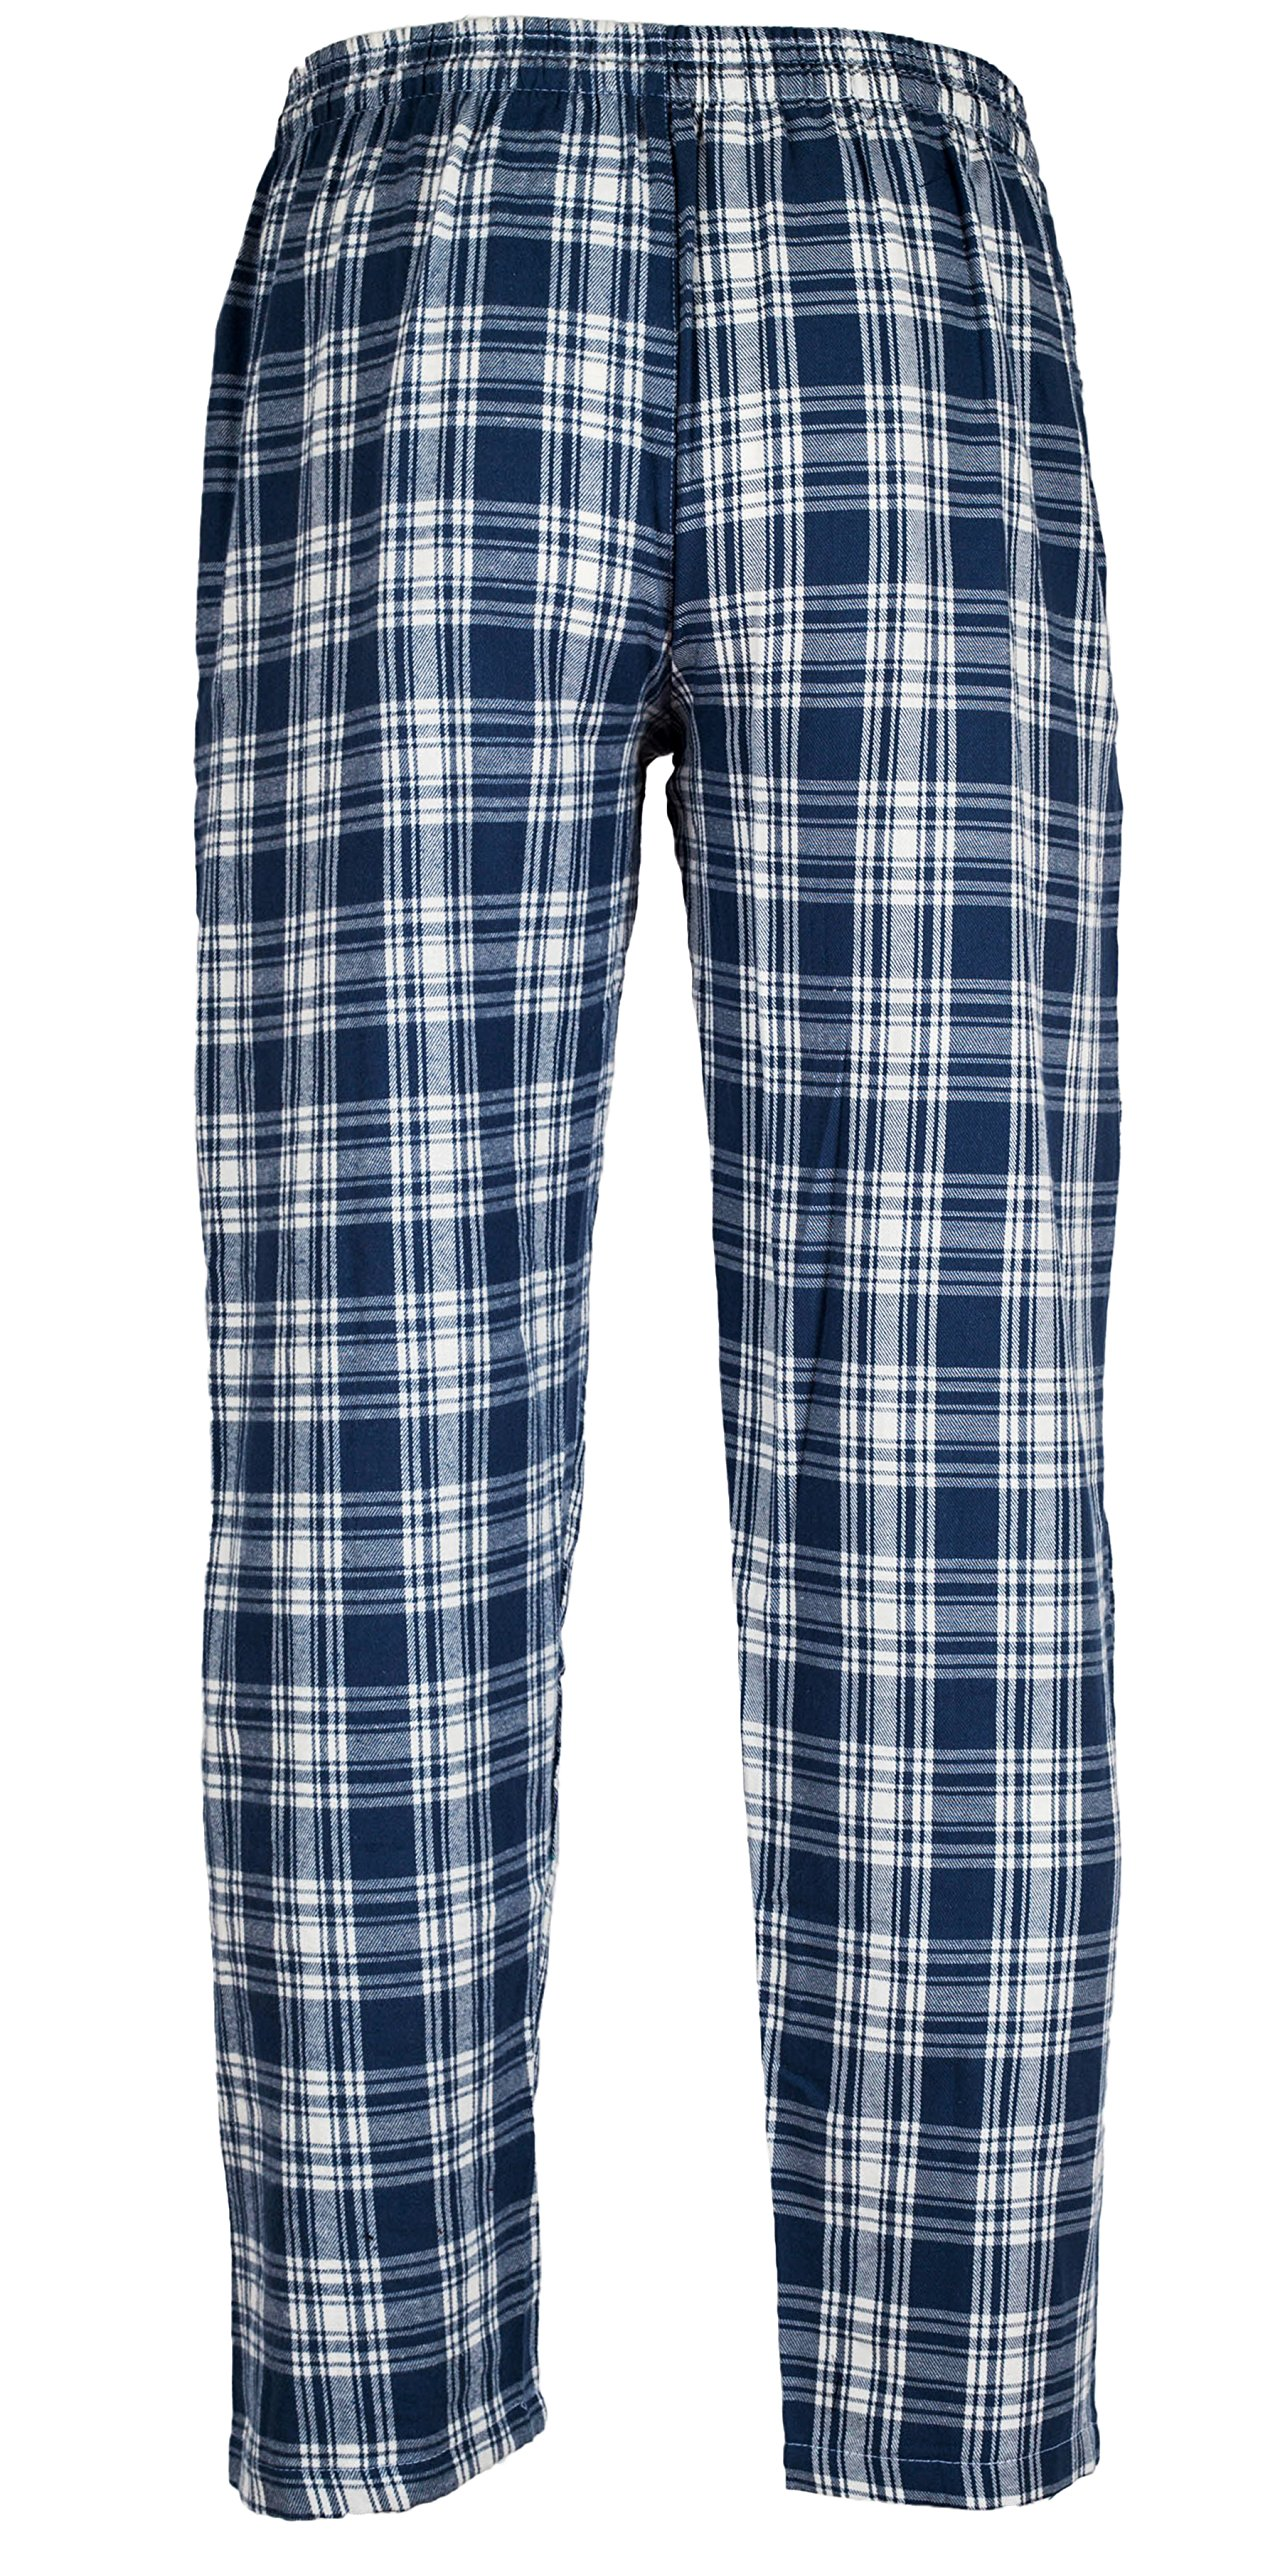 Andrew Scott Men's 3 Pack Cotton Flannel Fleece Brush Pajama Sleep & Lounge Pants (XL/40-42, 3 Pack - Classic Flannel Assorted Plaids) by Andrew Scott (Image #7)